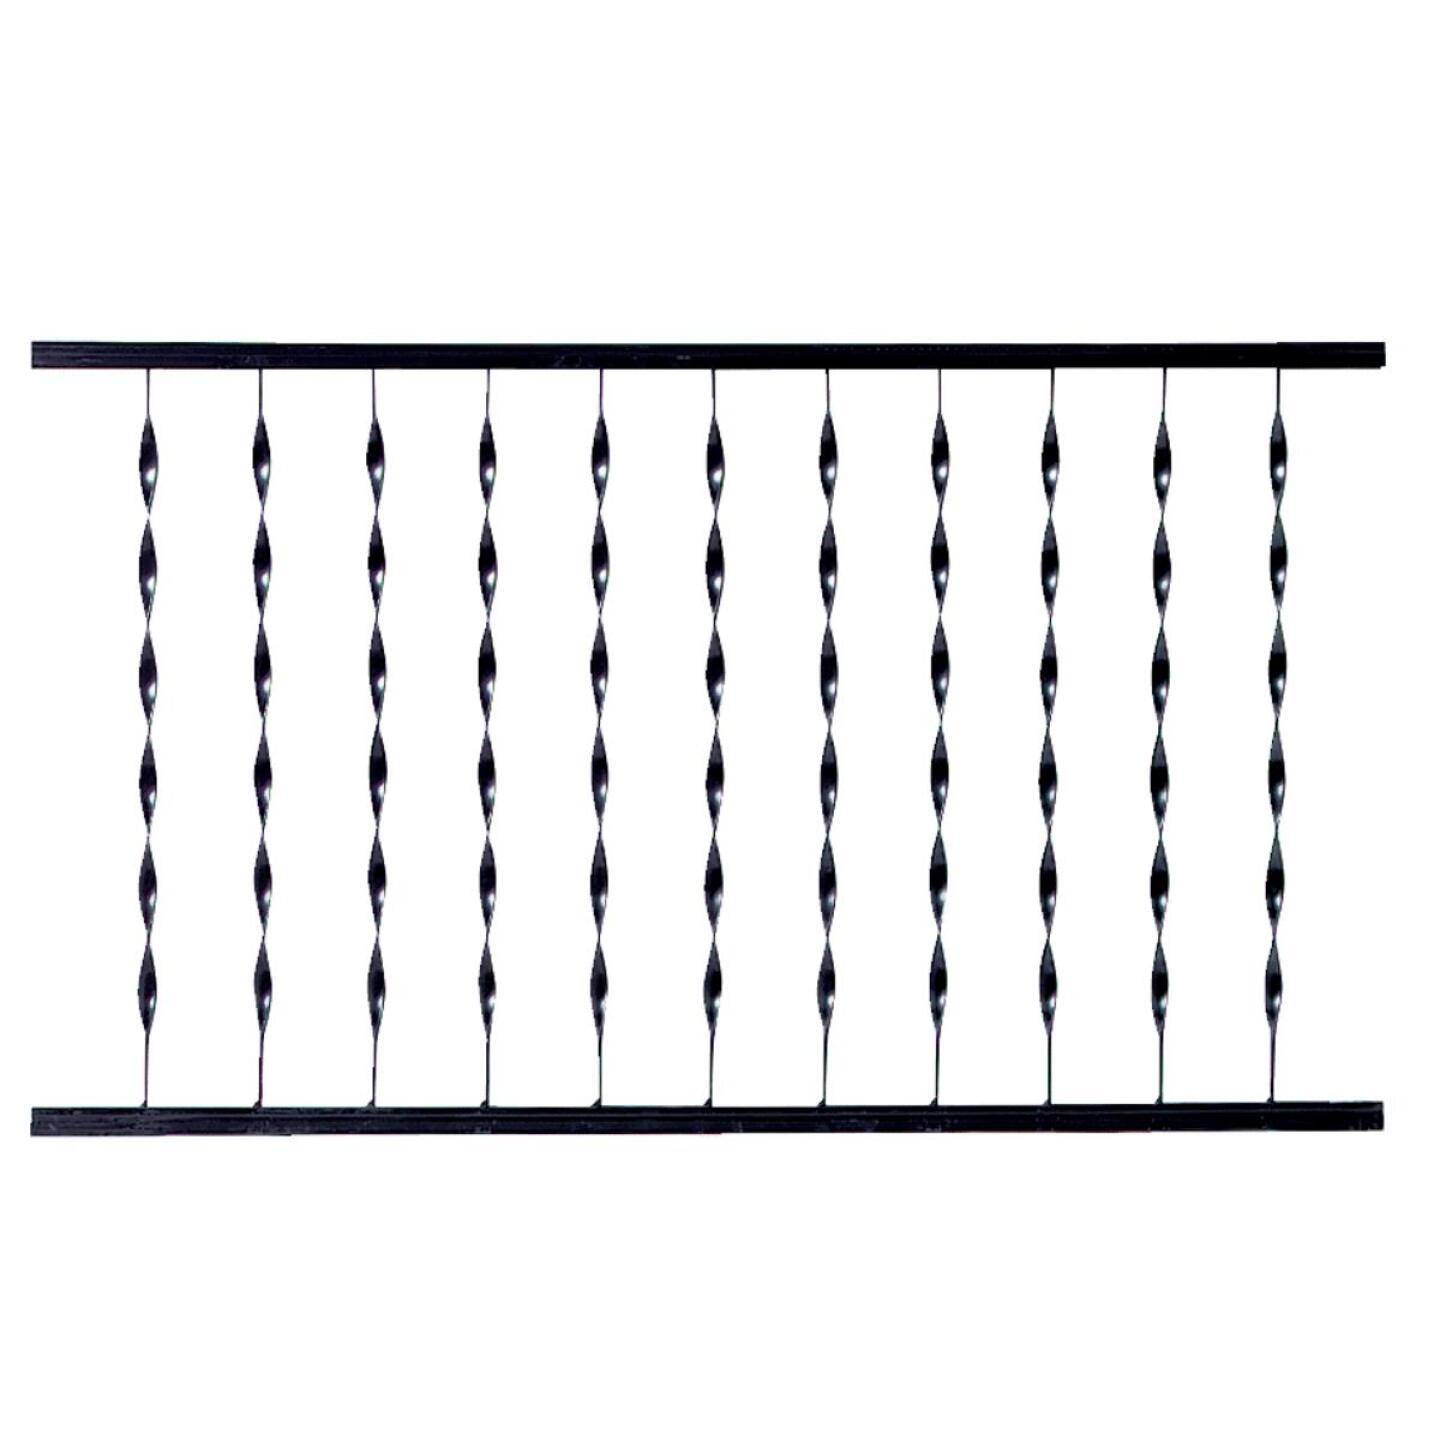 Gilpin Windsor Plus 32 In. H. x 4 Ft. L. Wrought Iron Railing Image 1